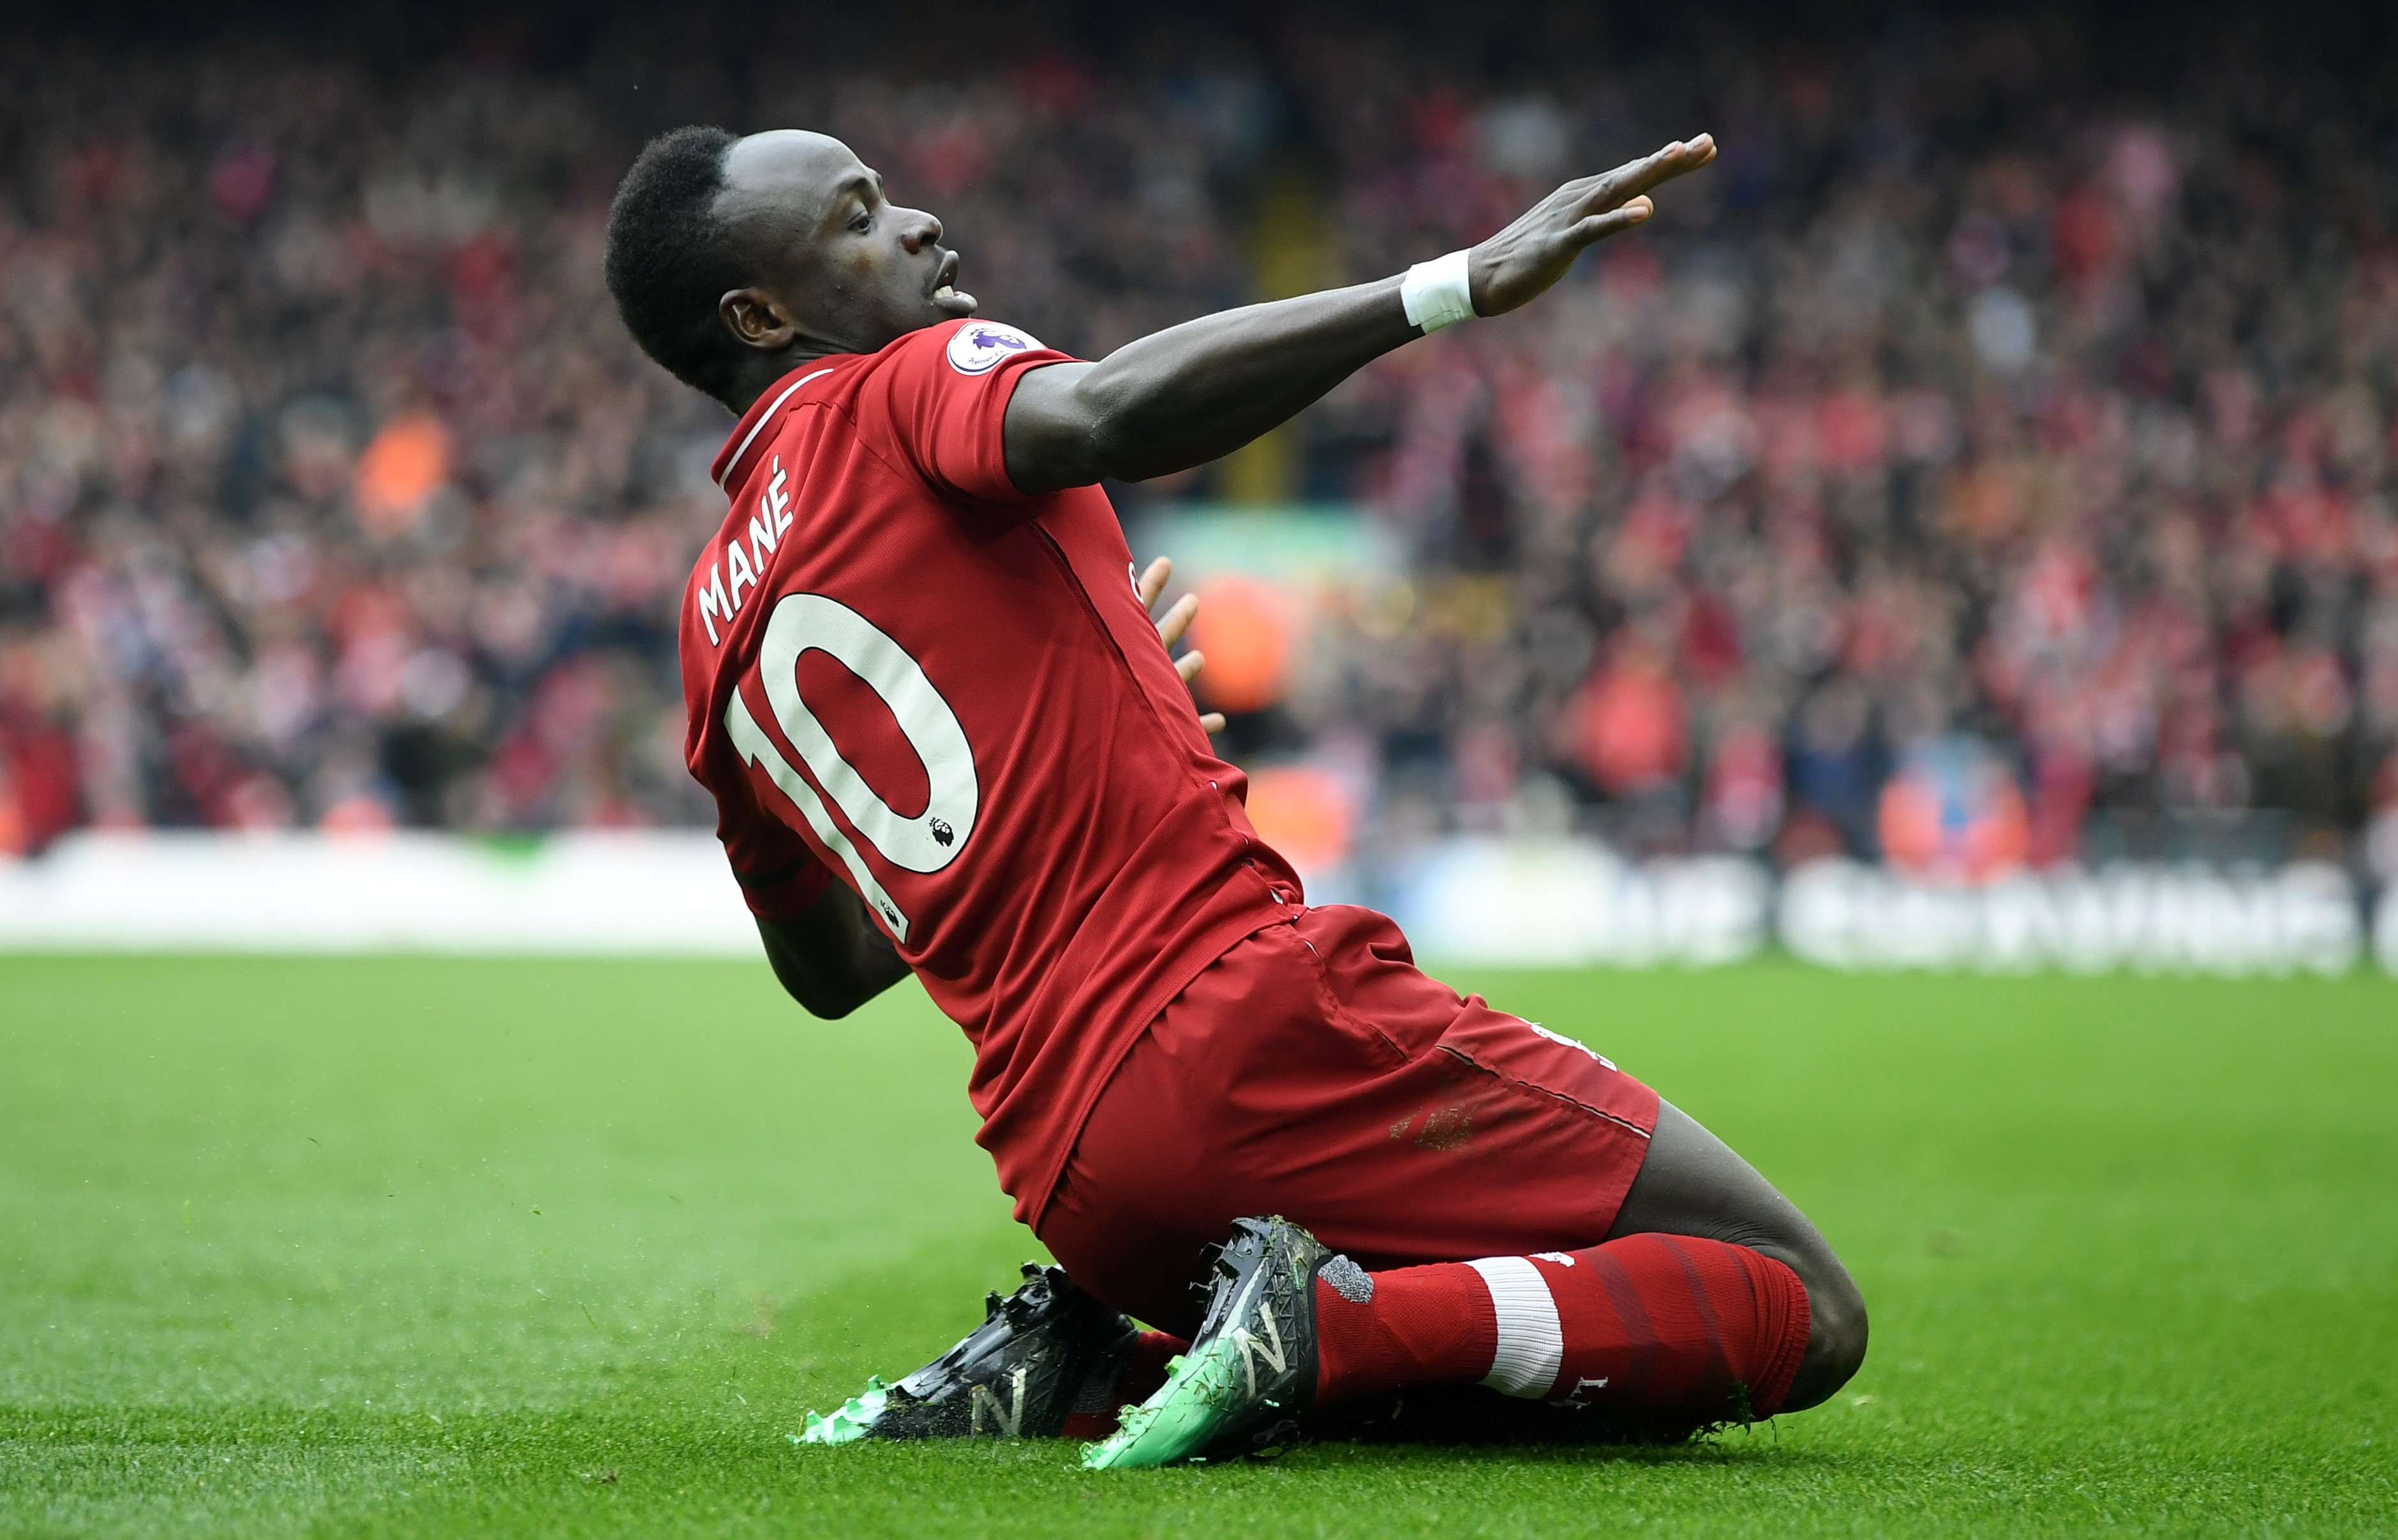 Golden Boot: Mane taking central role for Liverpool